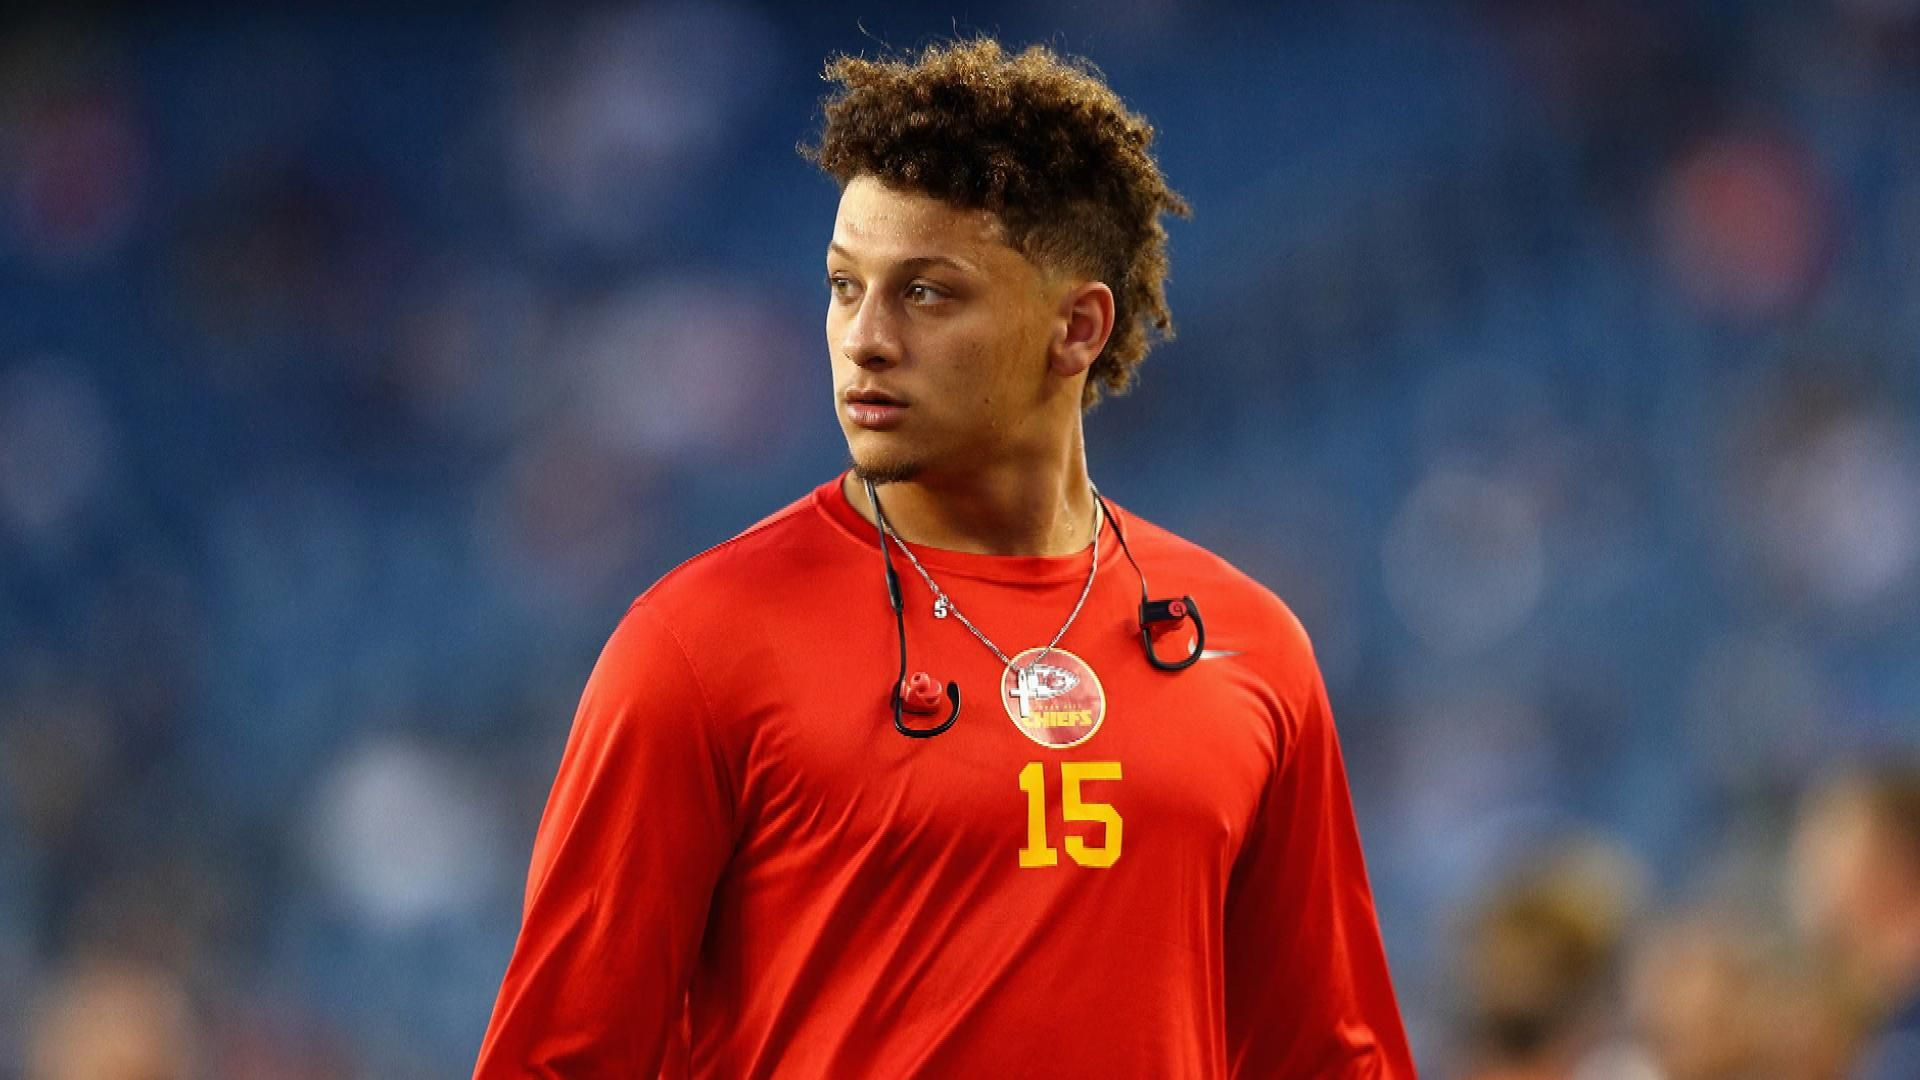 Patrick Mahomes Nfl Hd Wallpapers New Tab Sports Fan Tab